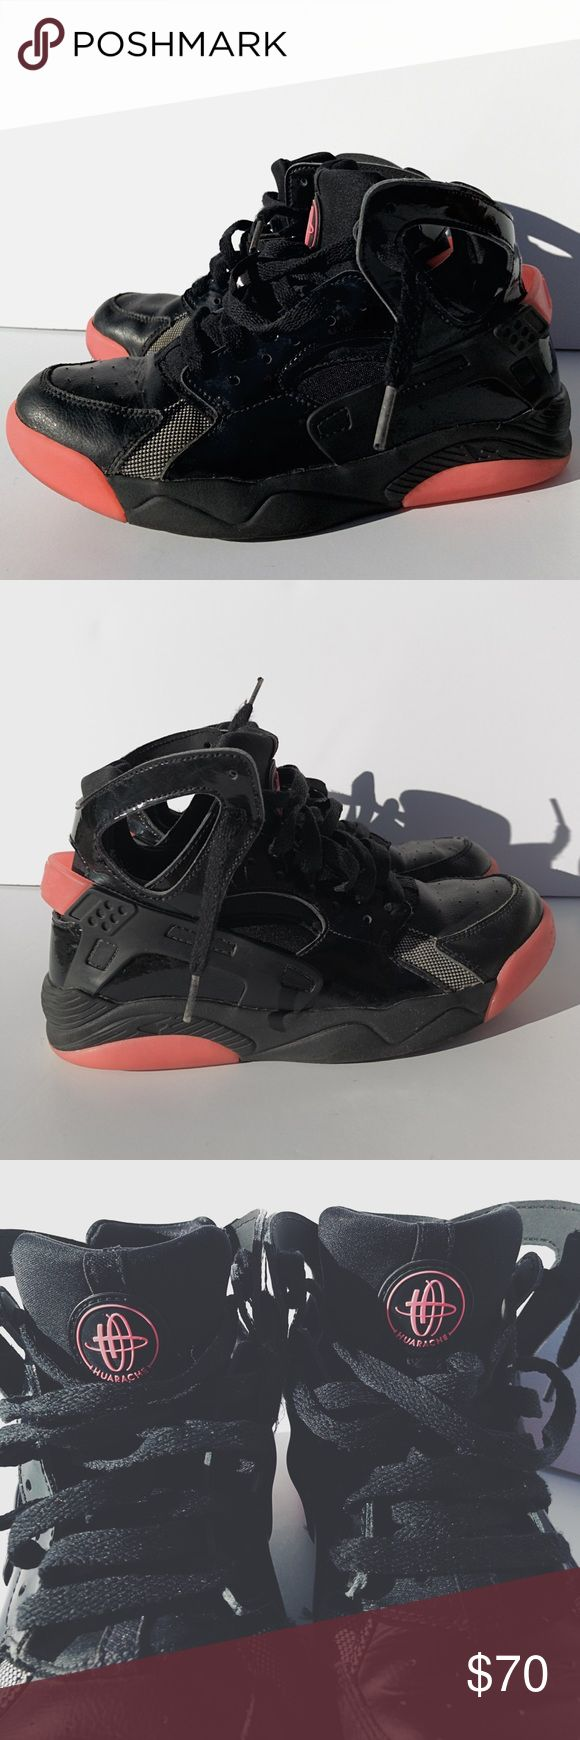 Nike Air Flight HUARACHE Great condition! High top Nike HUARACHE. Size 5.5Y or Women's 6.5. Nike Shoes